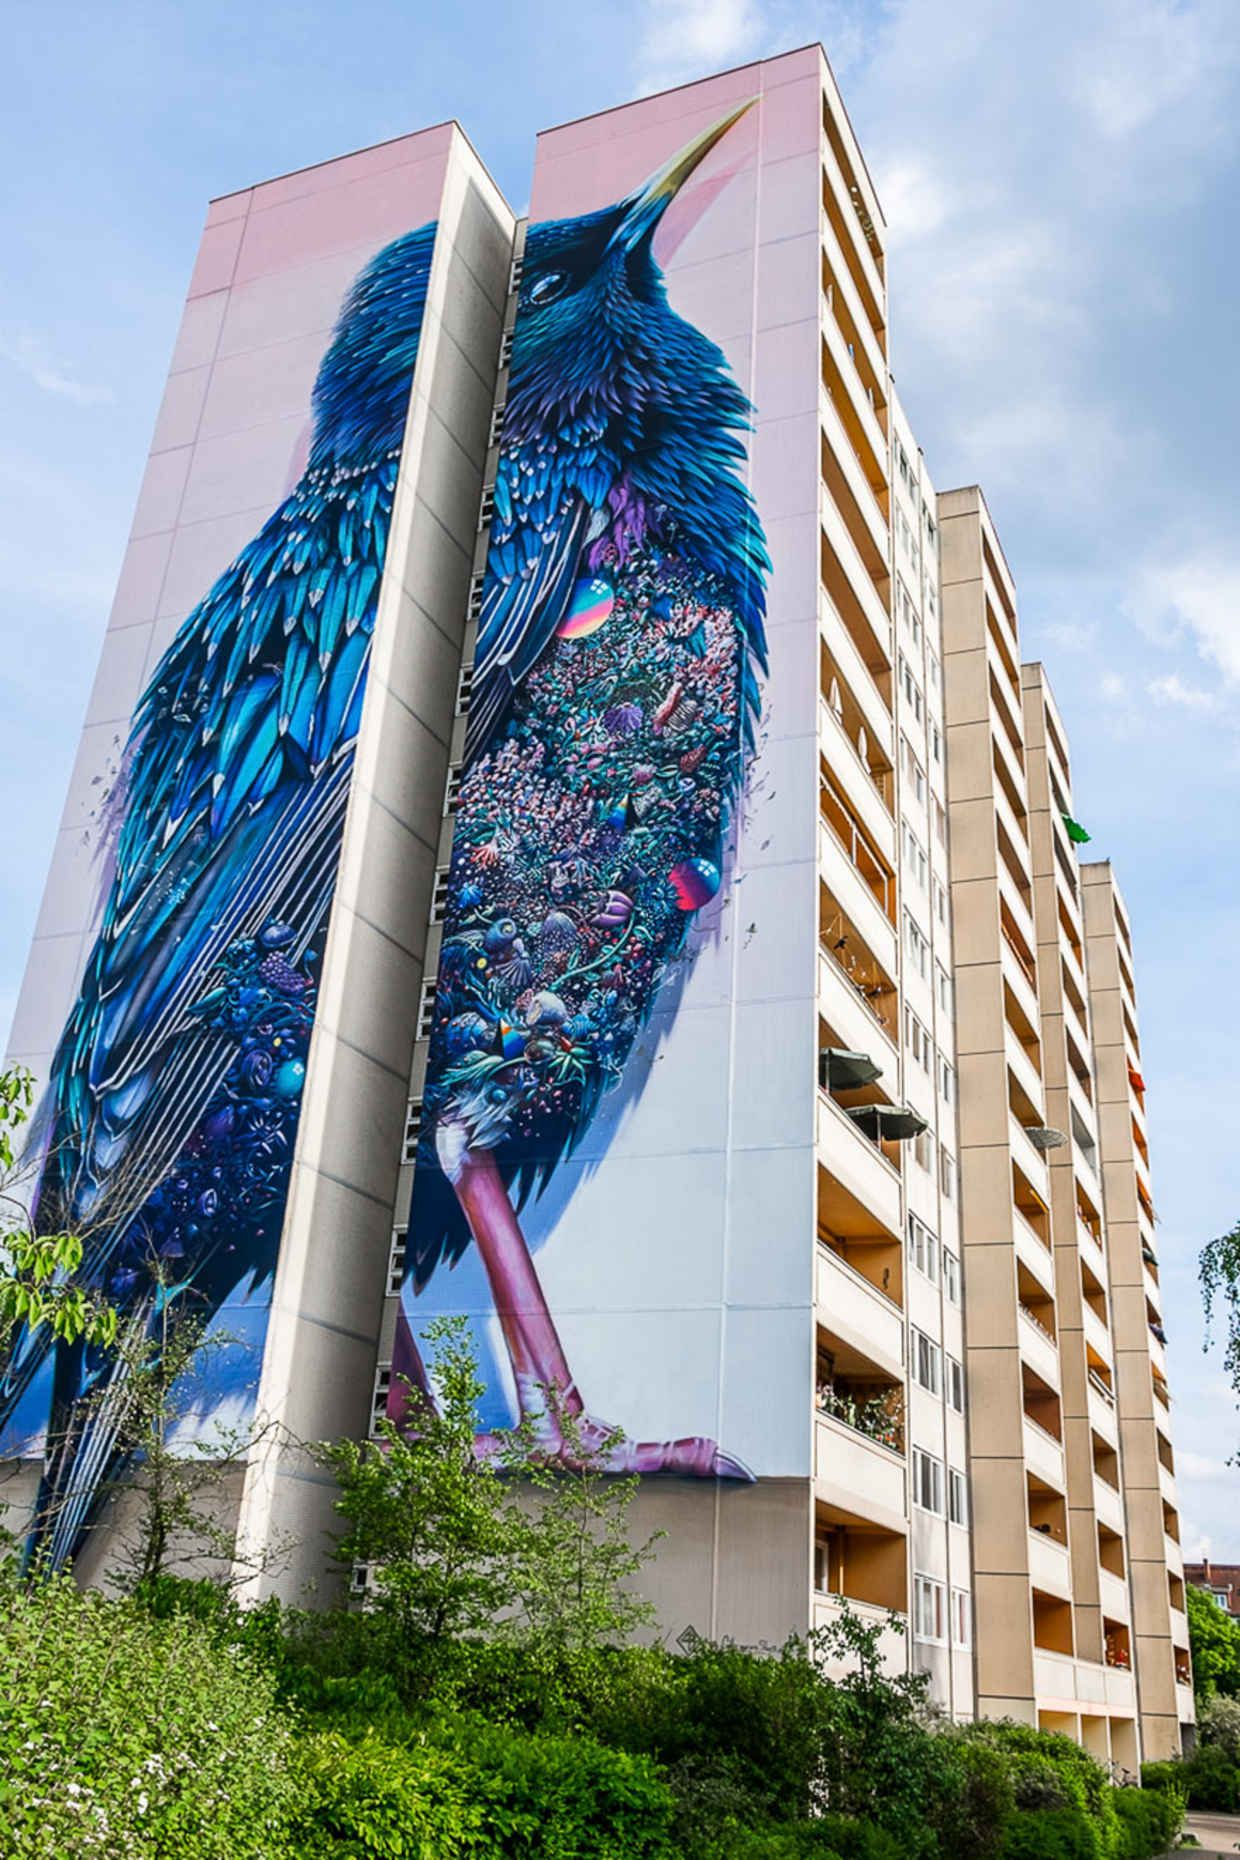 Building In Berlin Gets Transformed By Amazing Foot Tall - Building in berlin gets transformed by amazing 137 foot tall starling mural